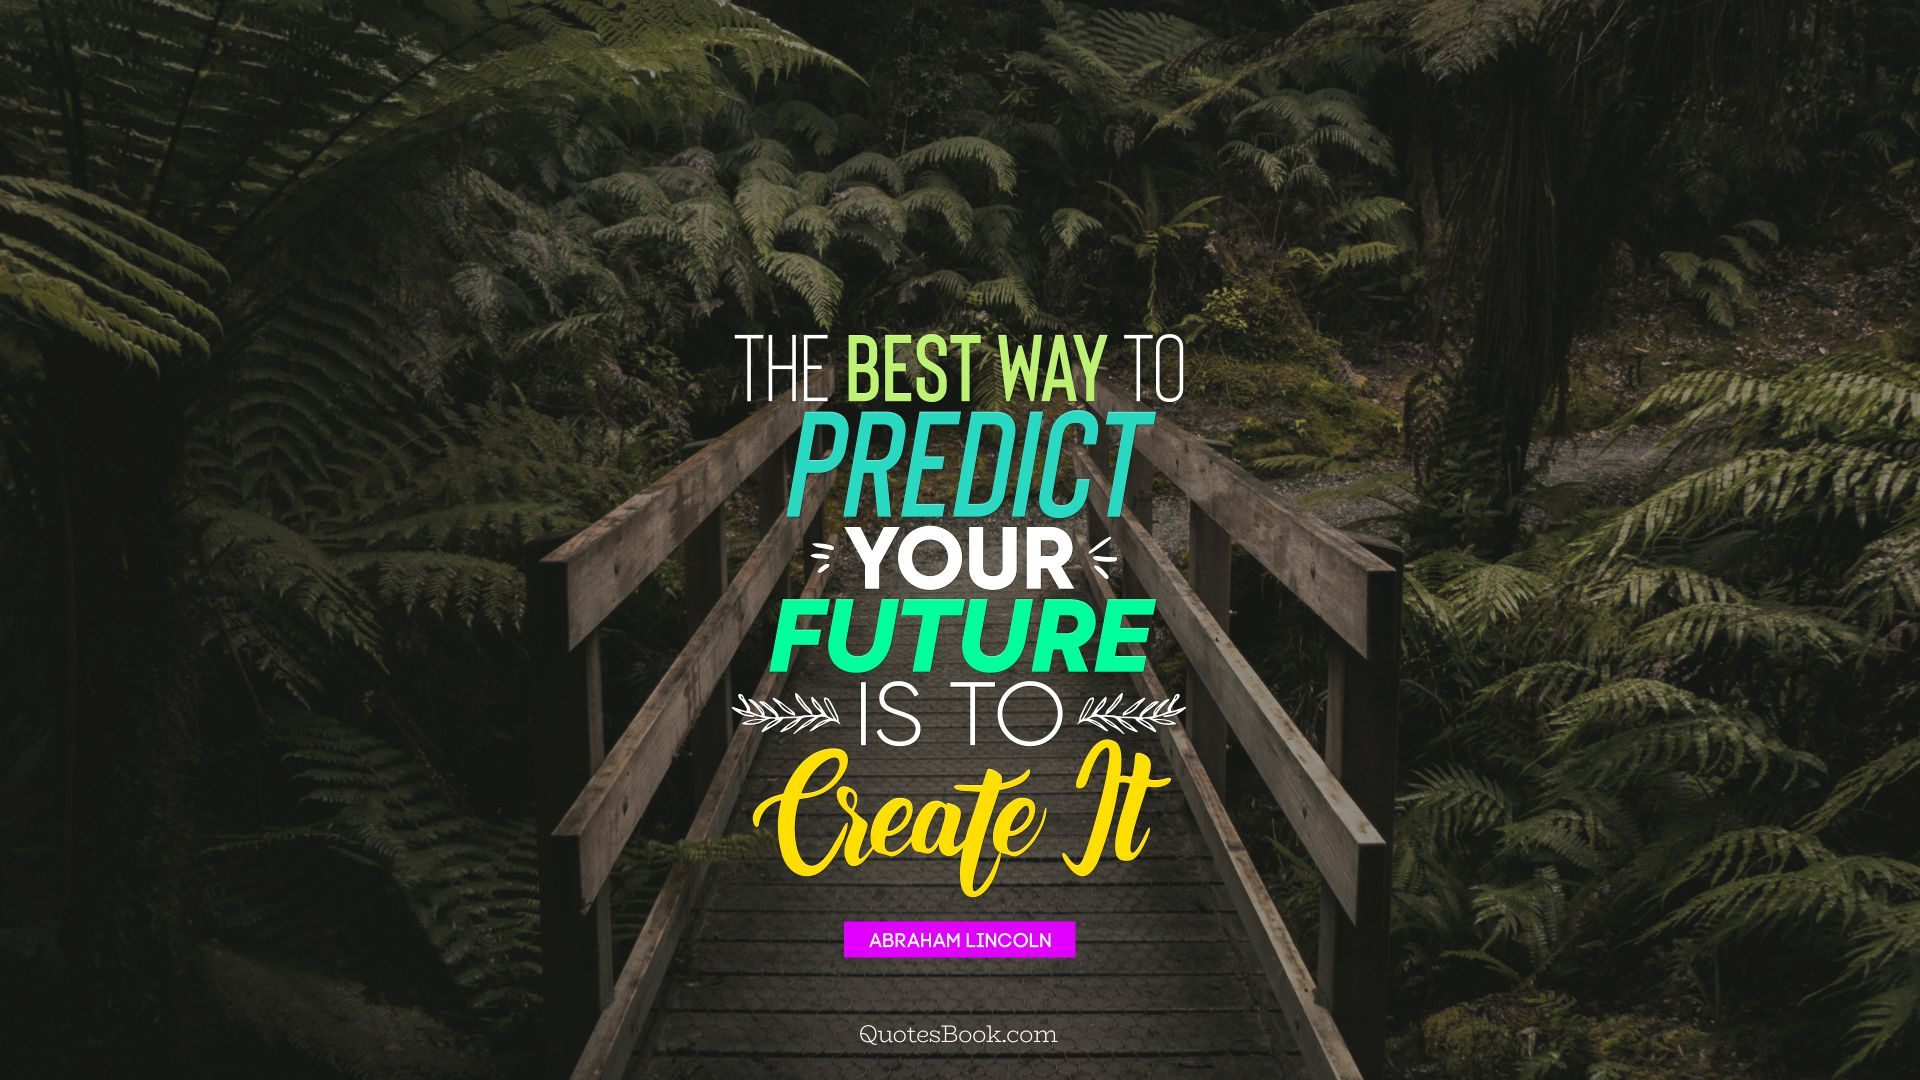 The best way to predict your future is to create it. - Quote by Abraham Lincoln